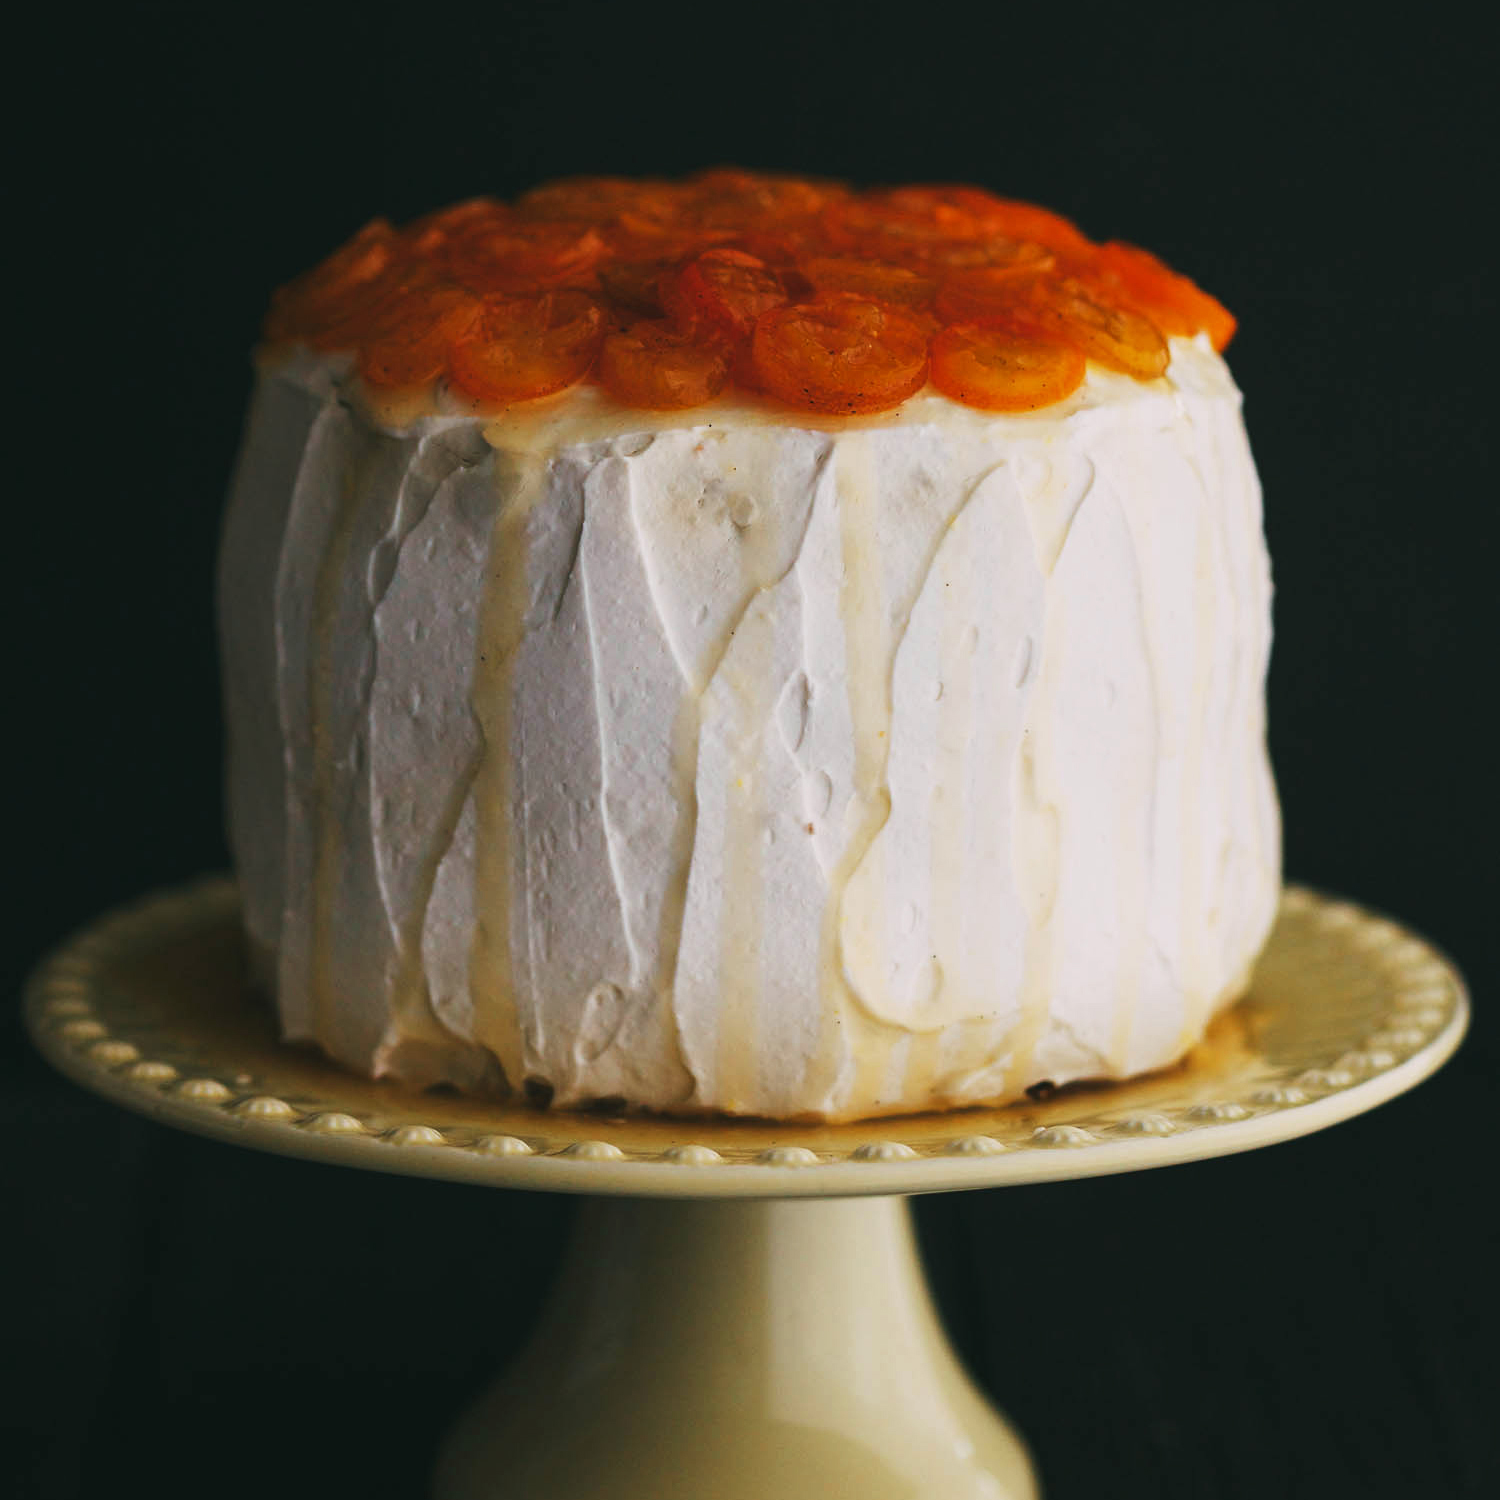 original-201501-r-layered-parsnip-cake-with-candied-kumquats.jpg